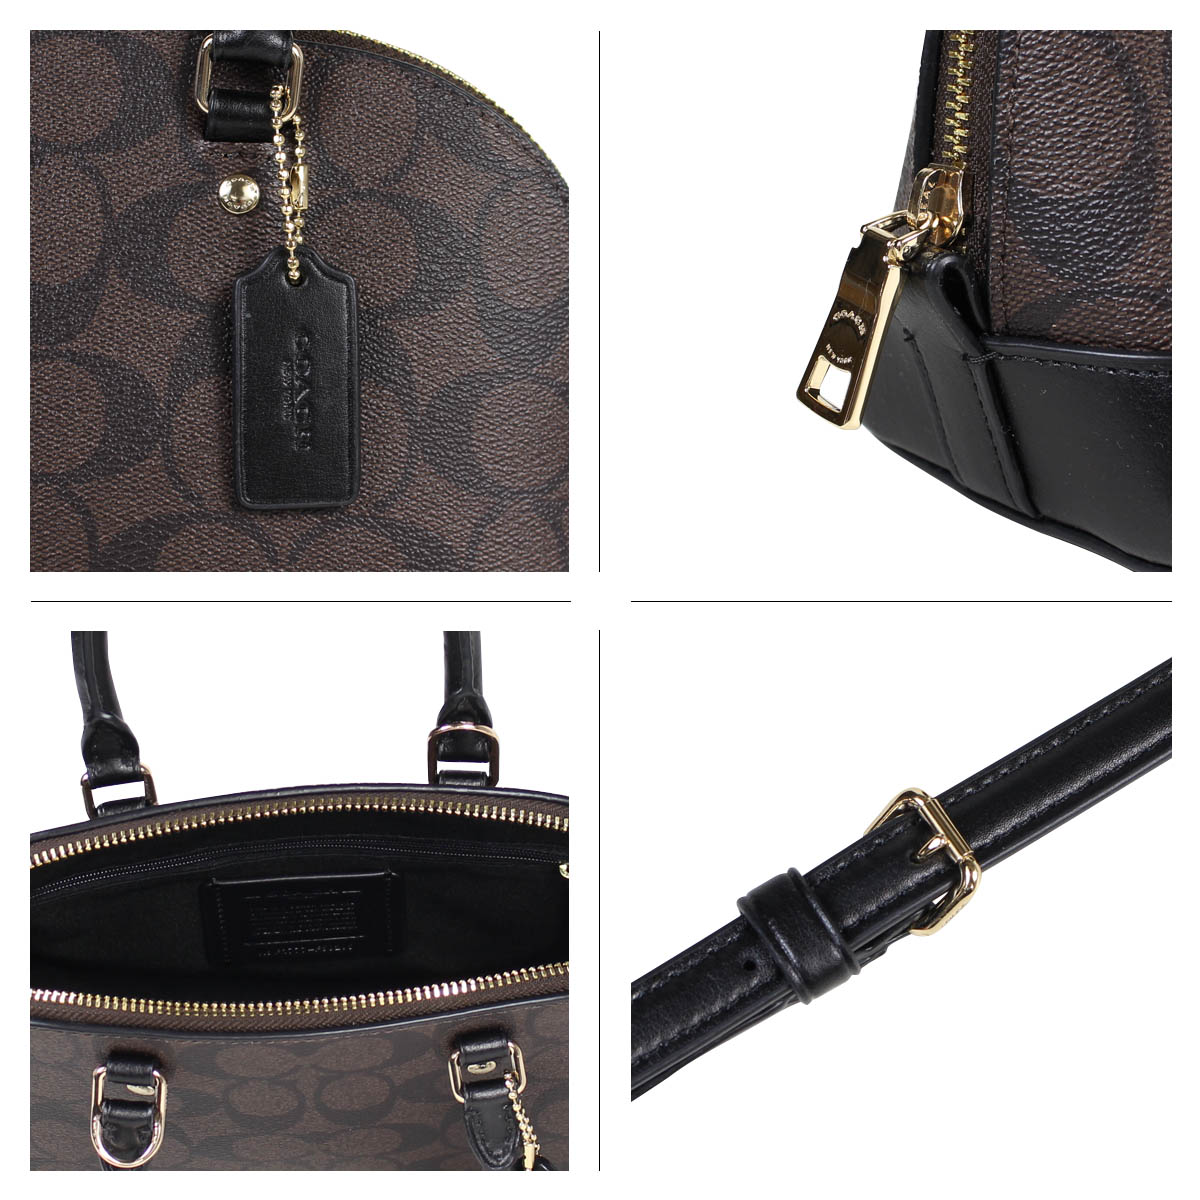 660705ca9e7bc ... inexpensive coach mini sierra satchel in signature coated canvas coach  bag shoulder bag ladys f59295 brown